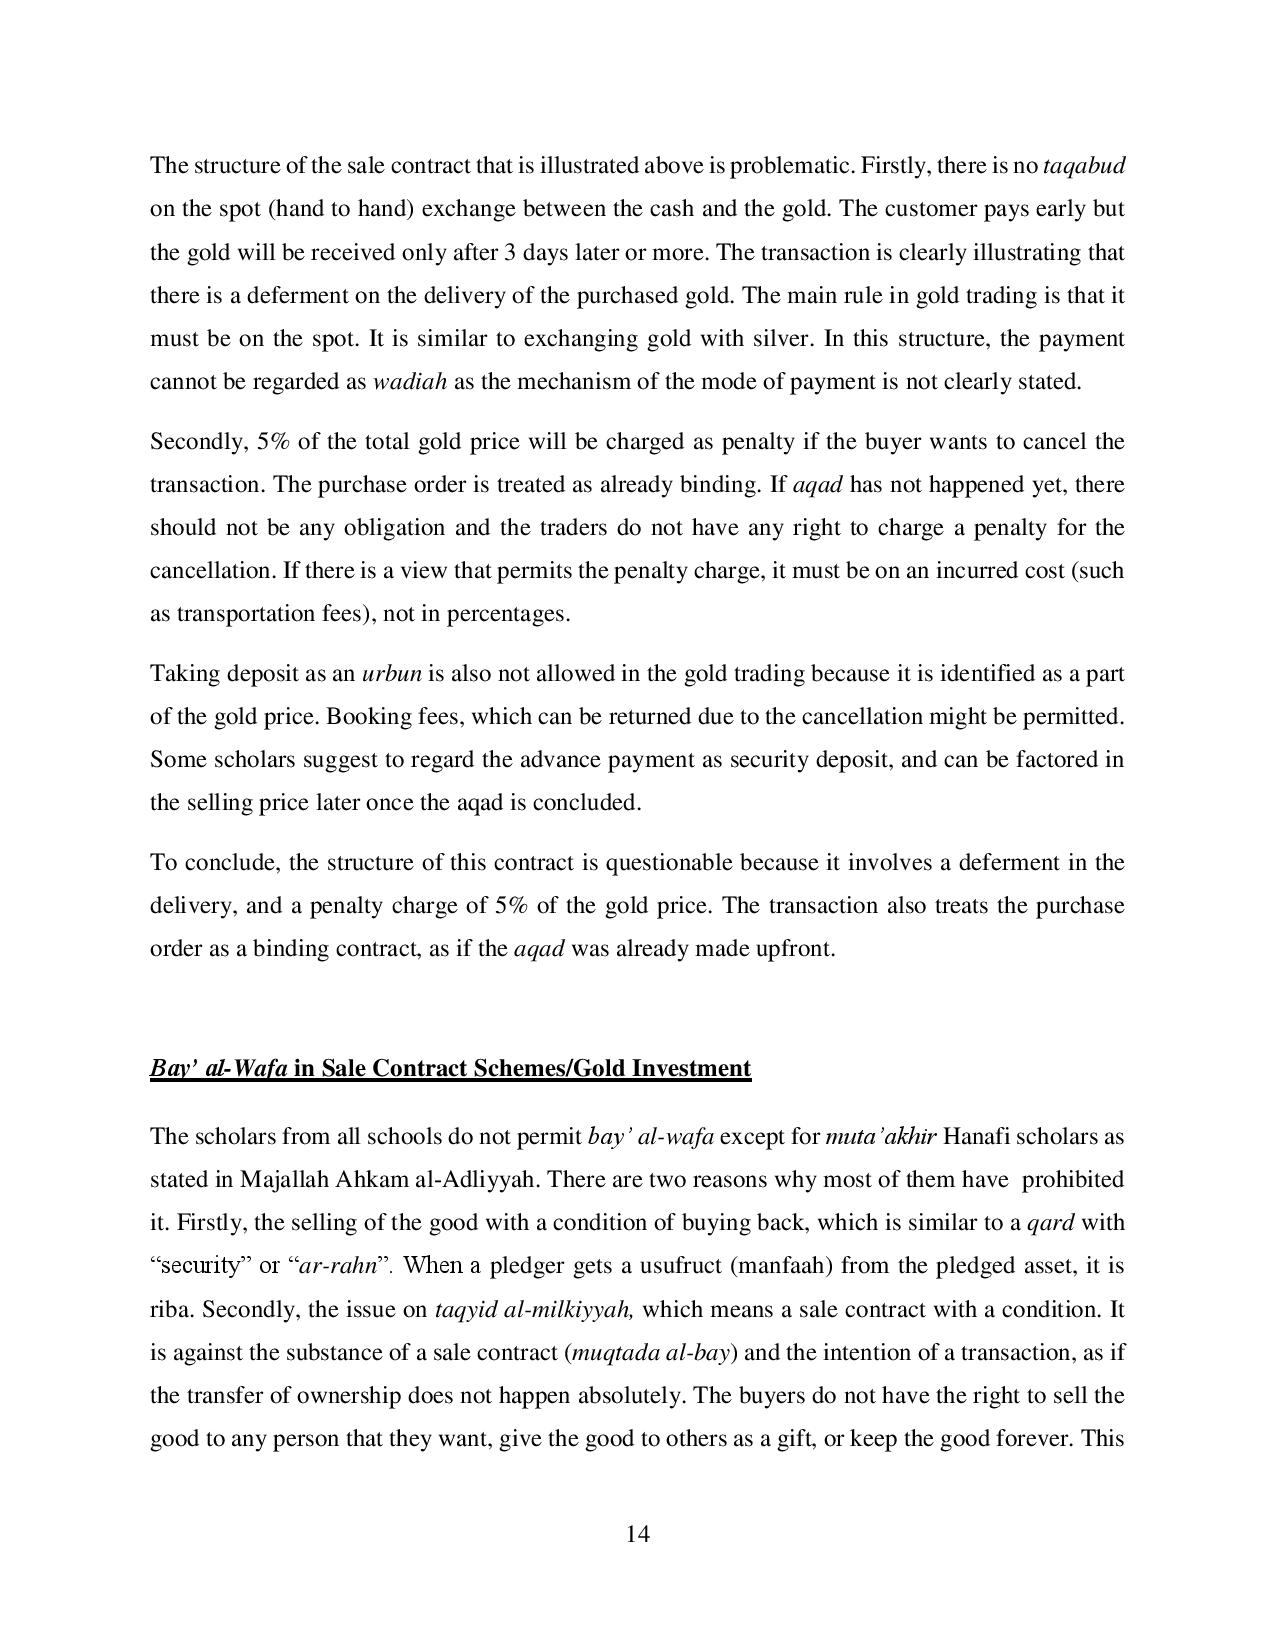 Gold Trading Shariah Issue-page-014